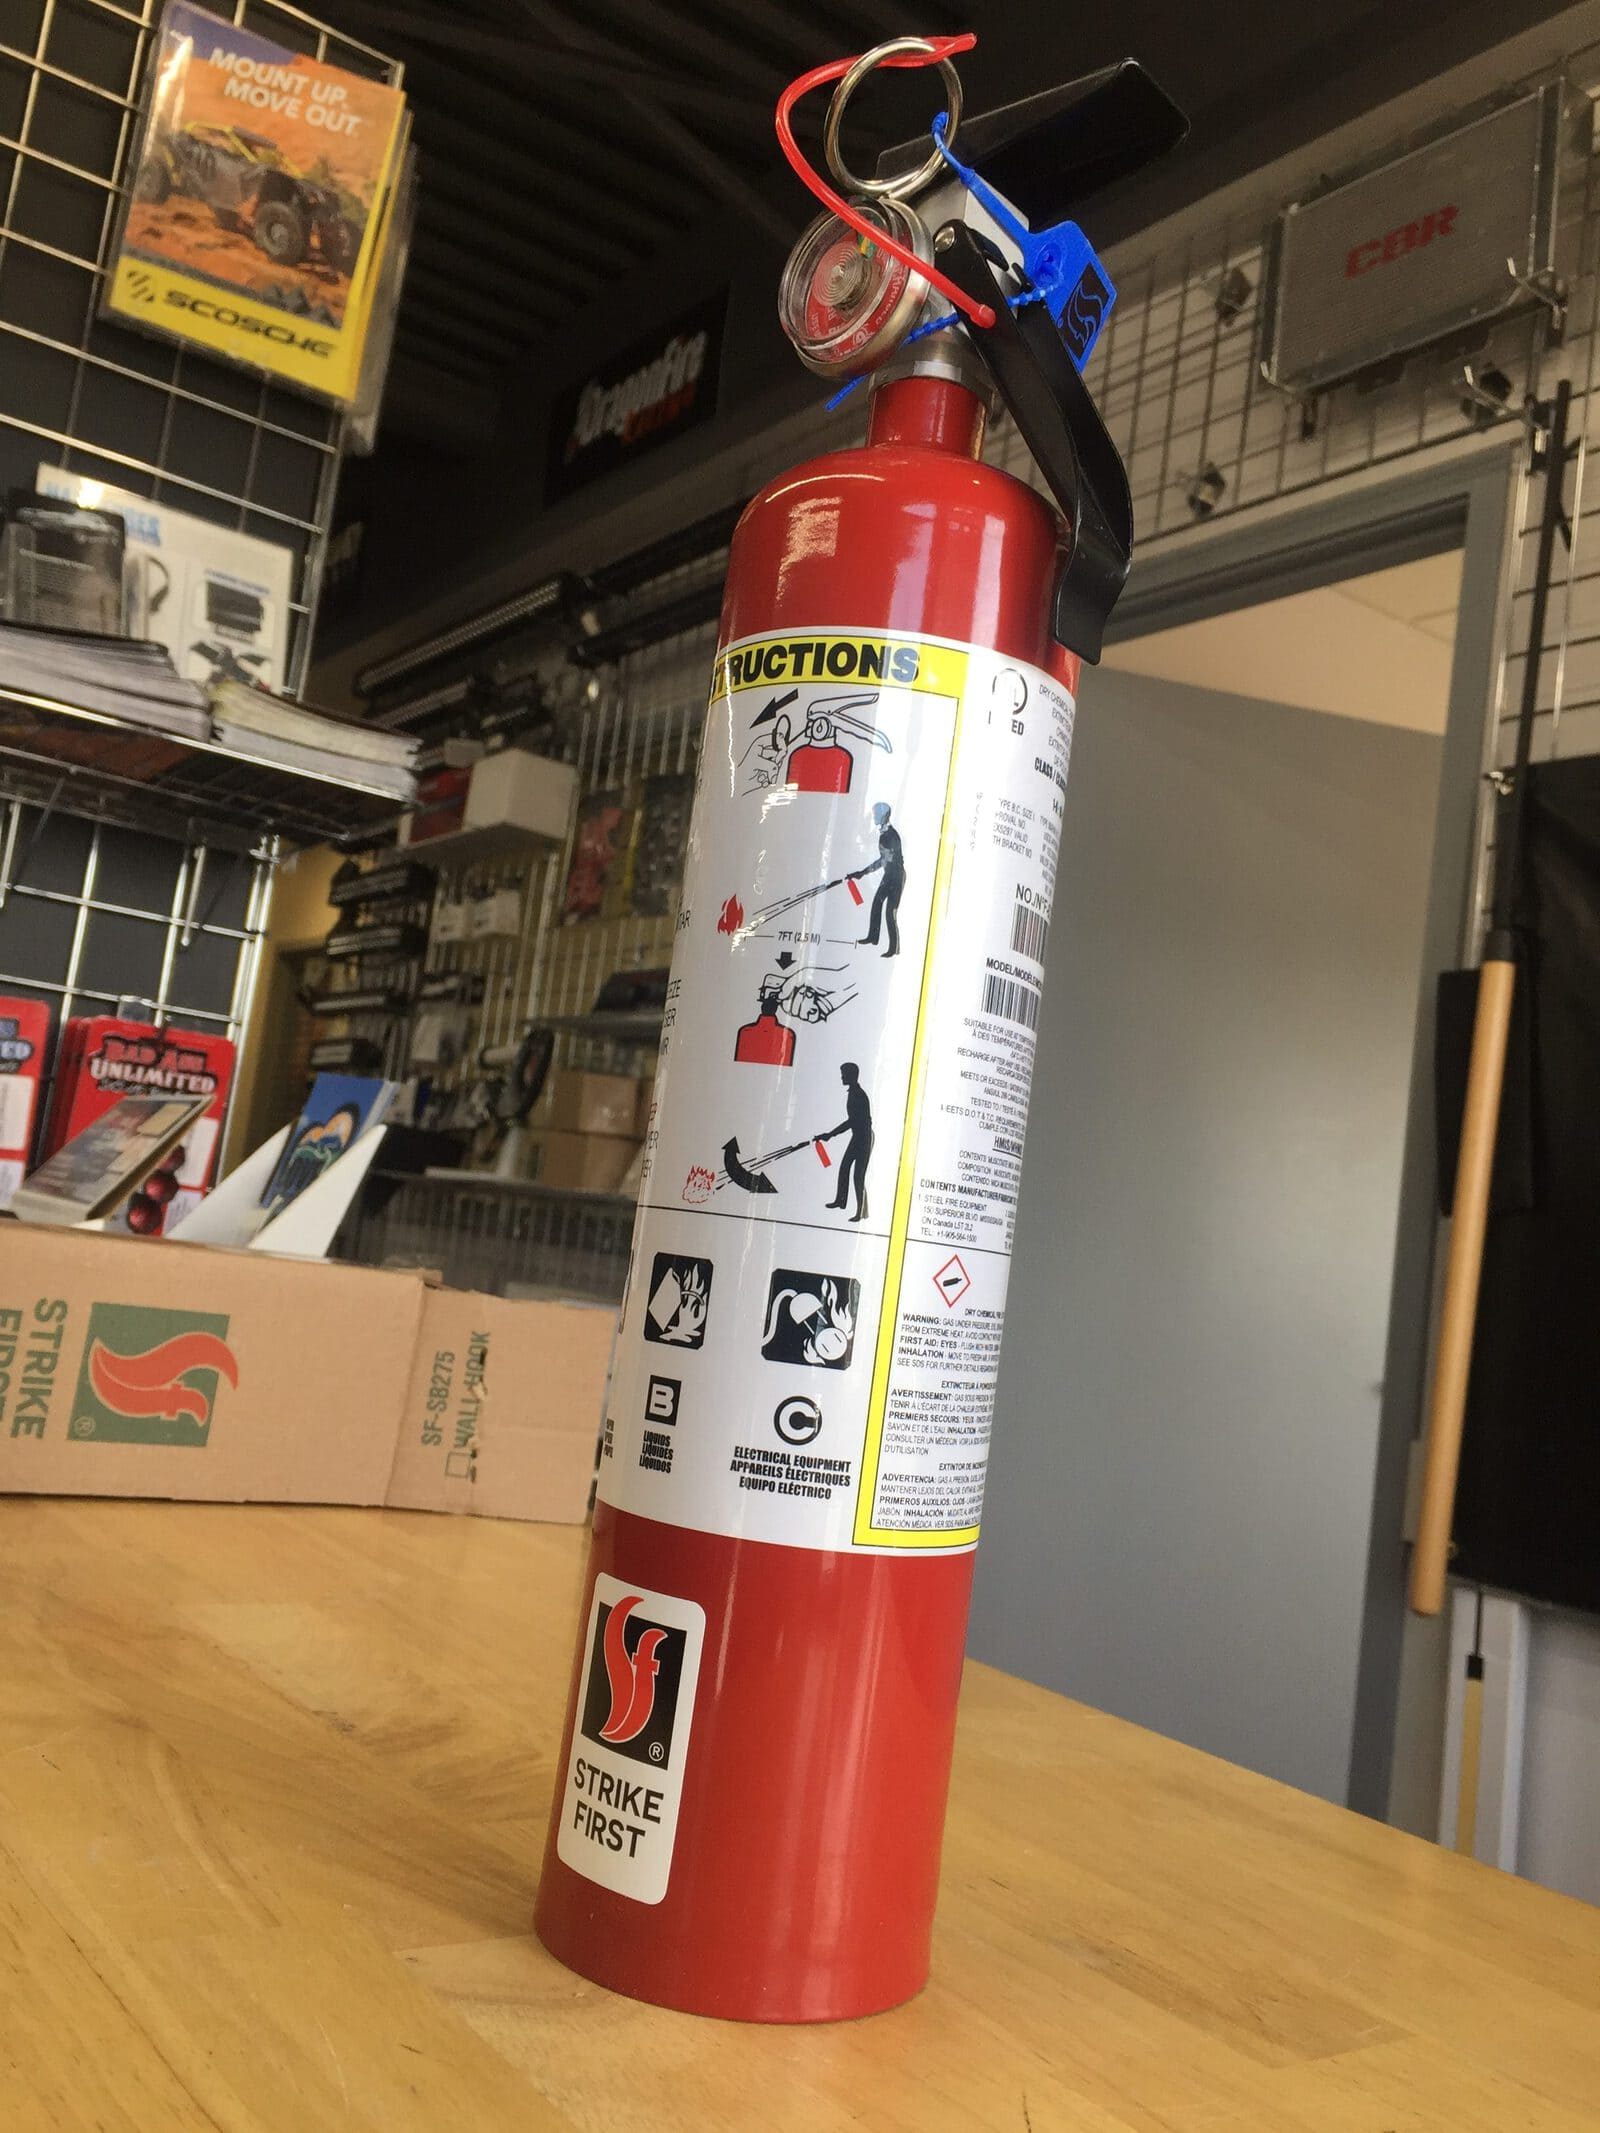 STRIKE FIRST 2 5LB ABC FIRE EXTINGUISHER